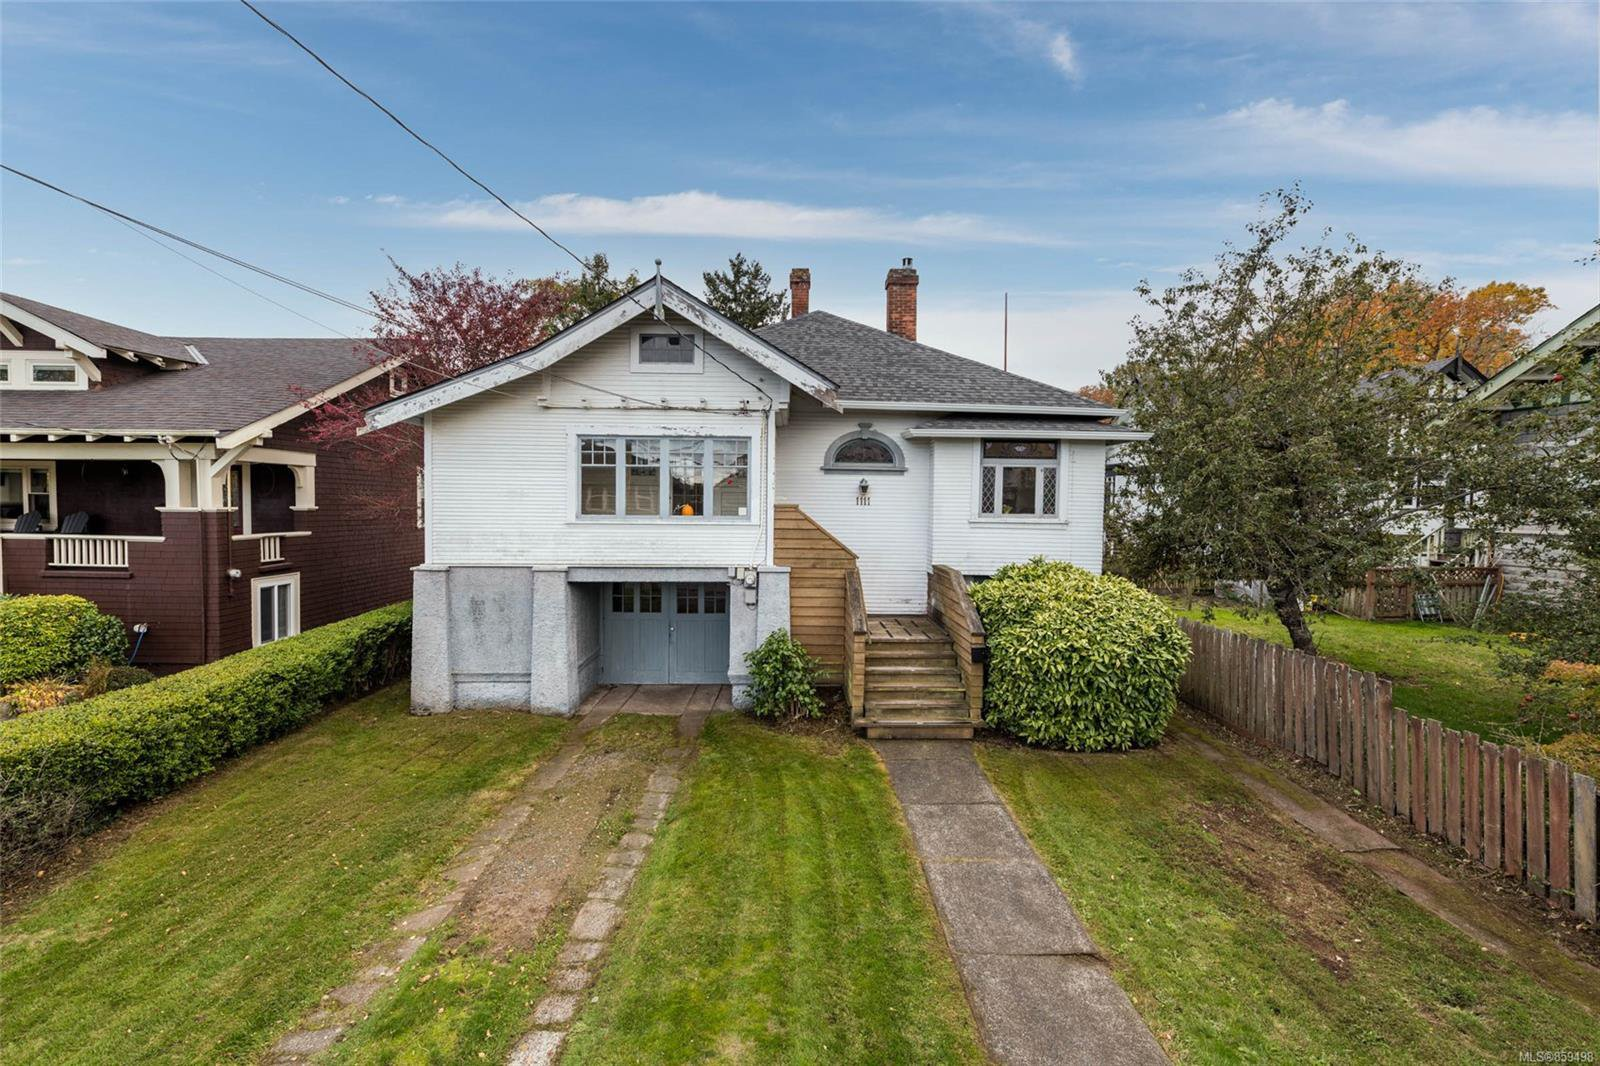 Main Photo: 1111 Leonard St in : Vi Fairfield West House for sale (Victoria)  : MLS®# 859498